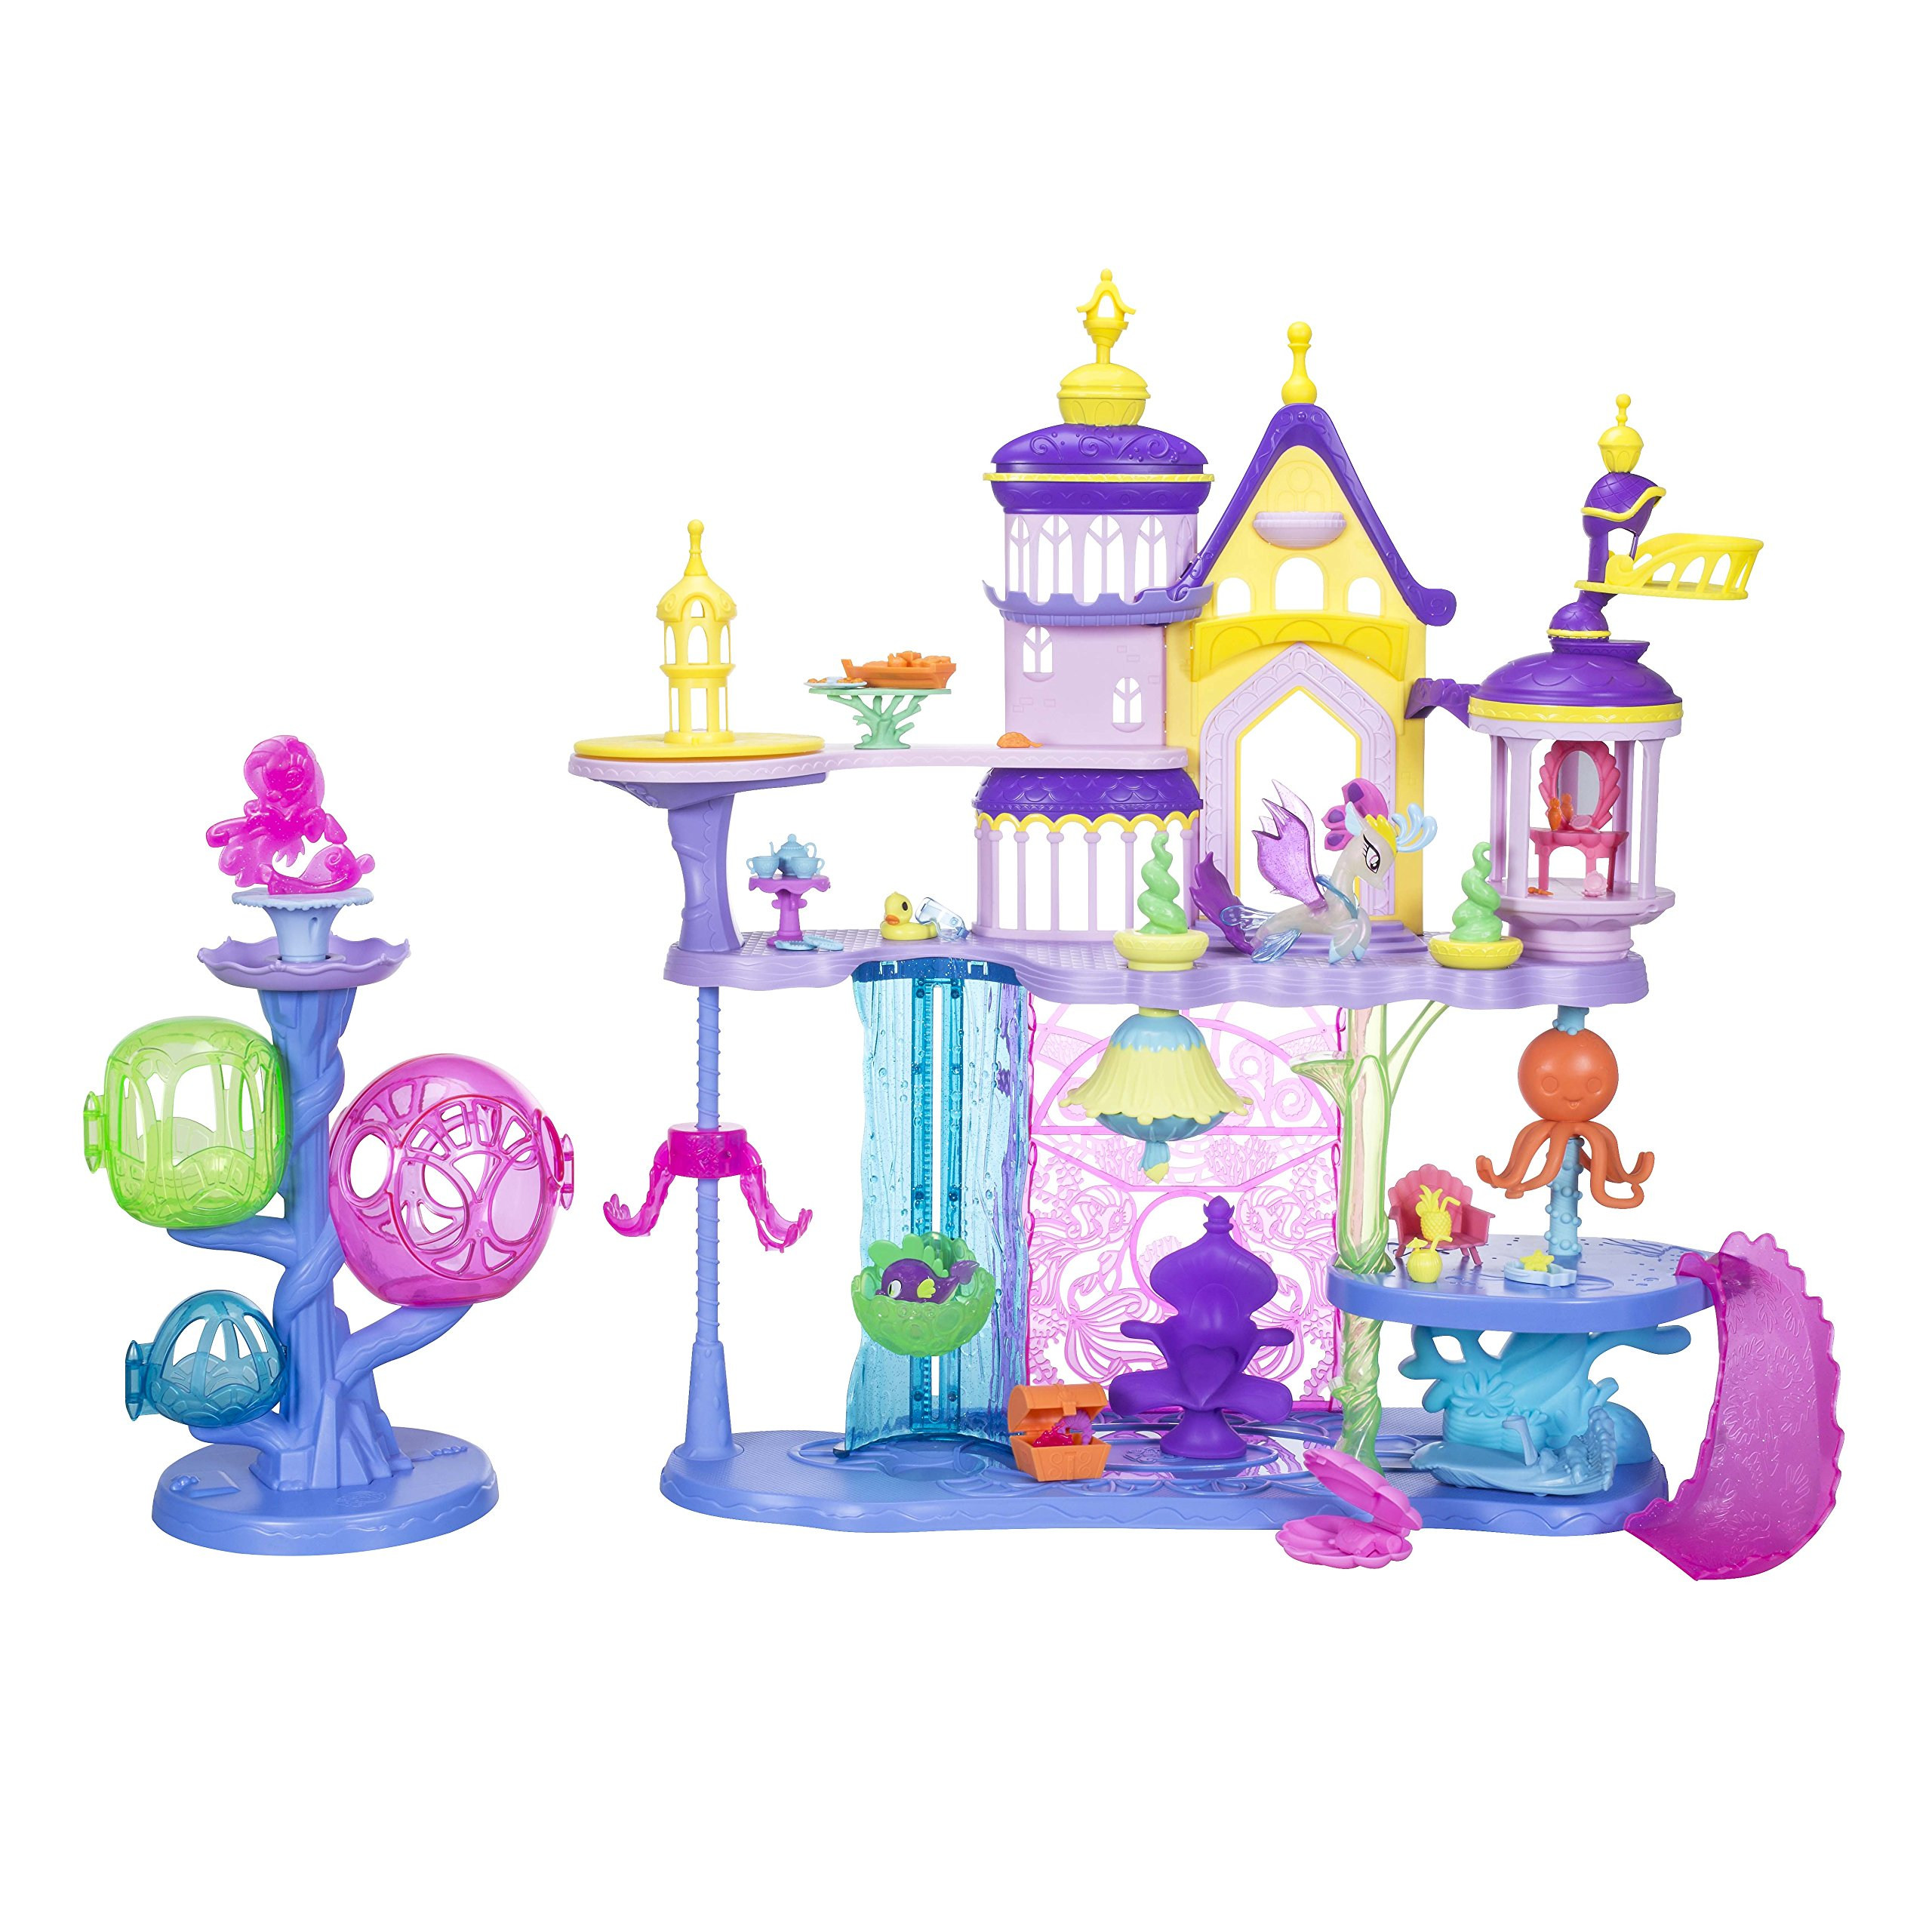 마이 리틀 포니 캔탈롯 씨퀘스트리아 캐슬 My Little Pony: The Movie Canterlot & Seaquestria Castle with Light-Up Tower